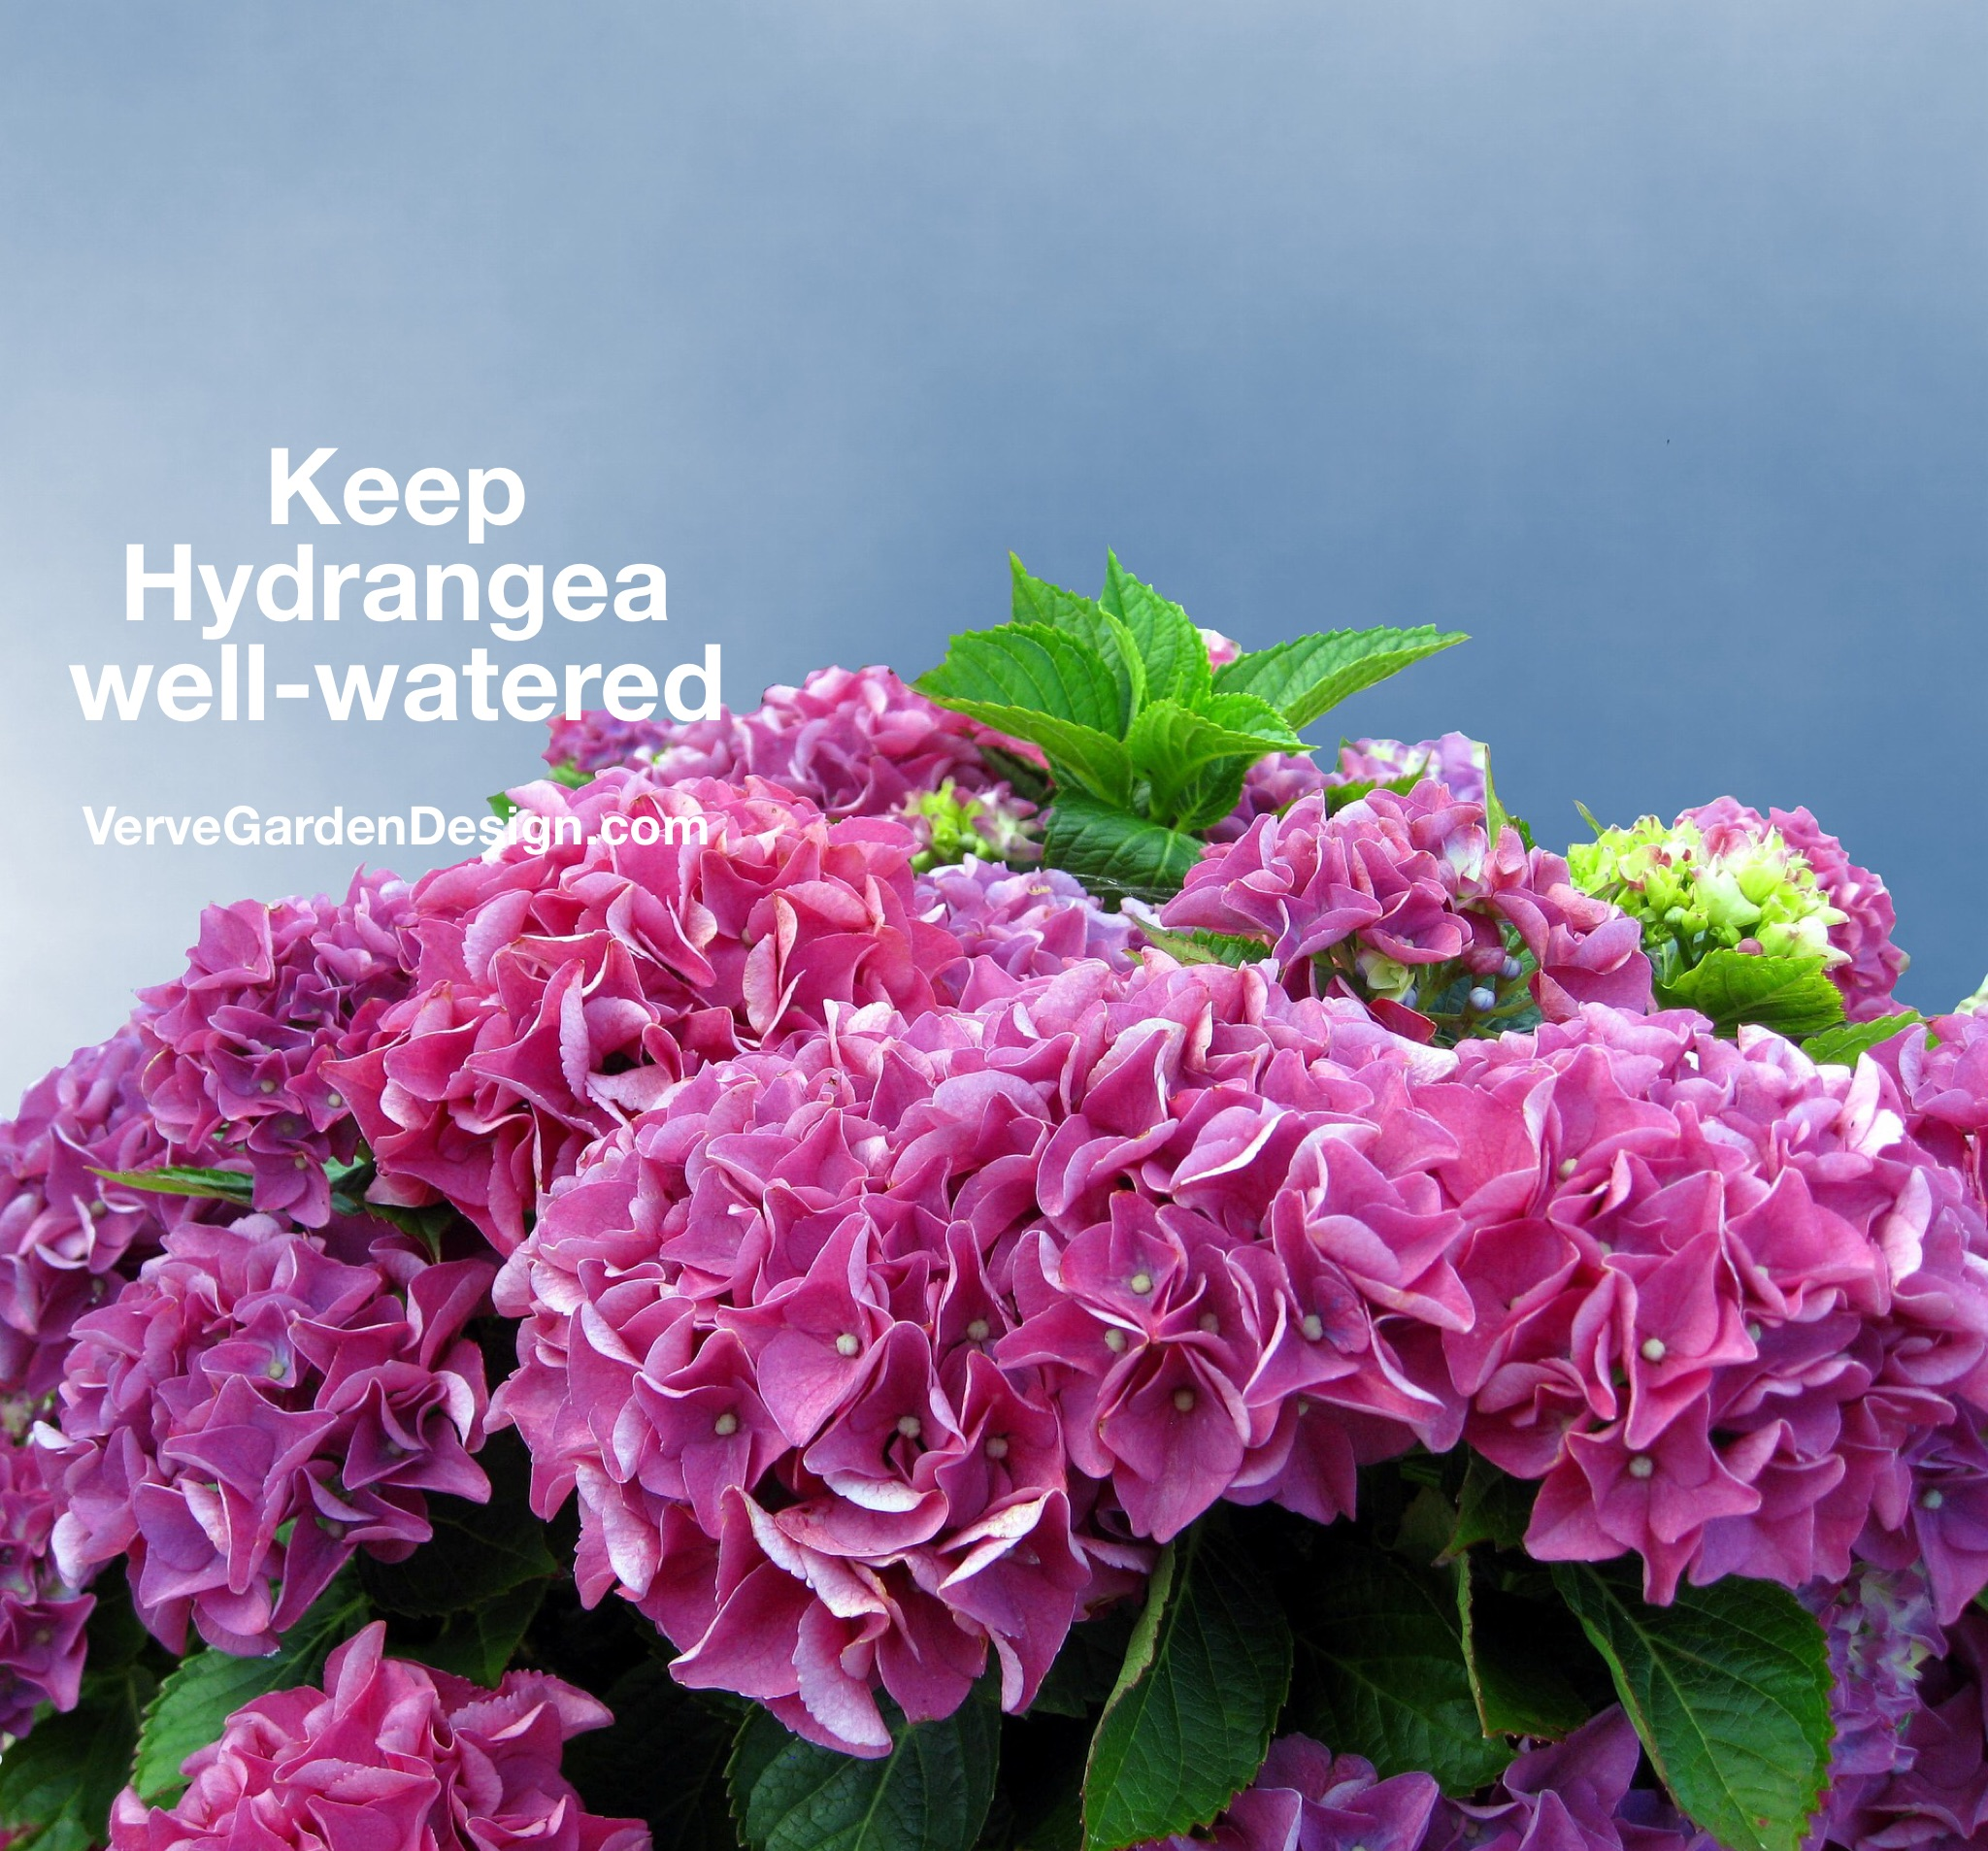 Hydrangeas need a lot of water and can wilt when hot in July and August.